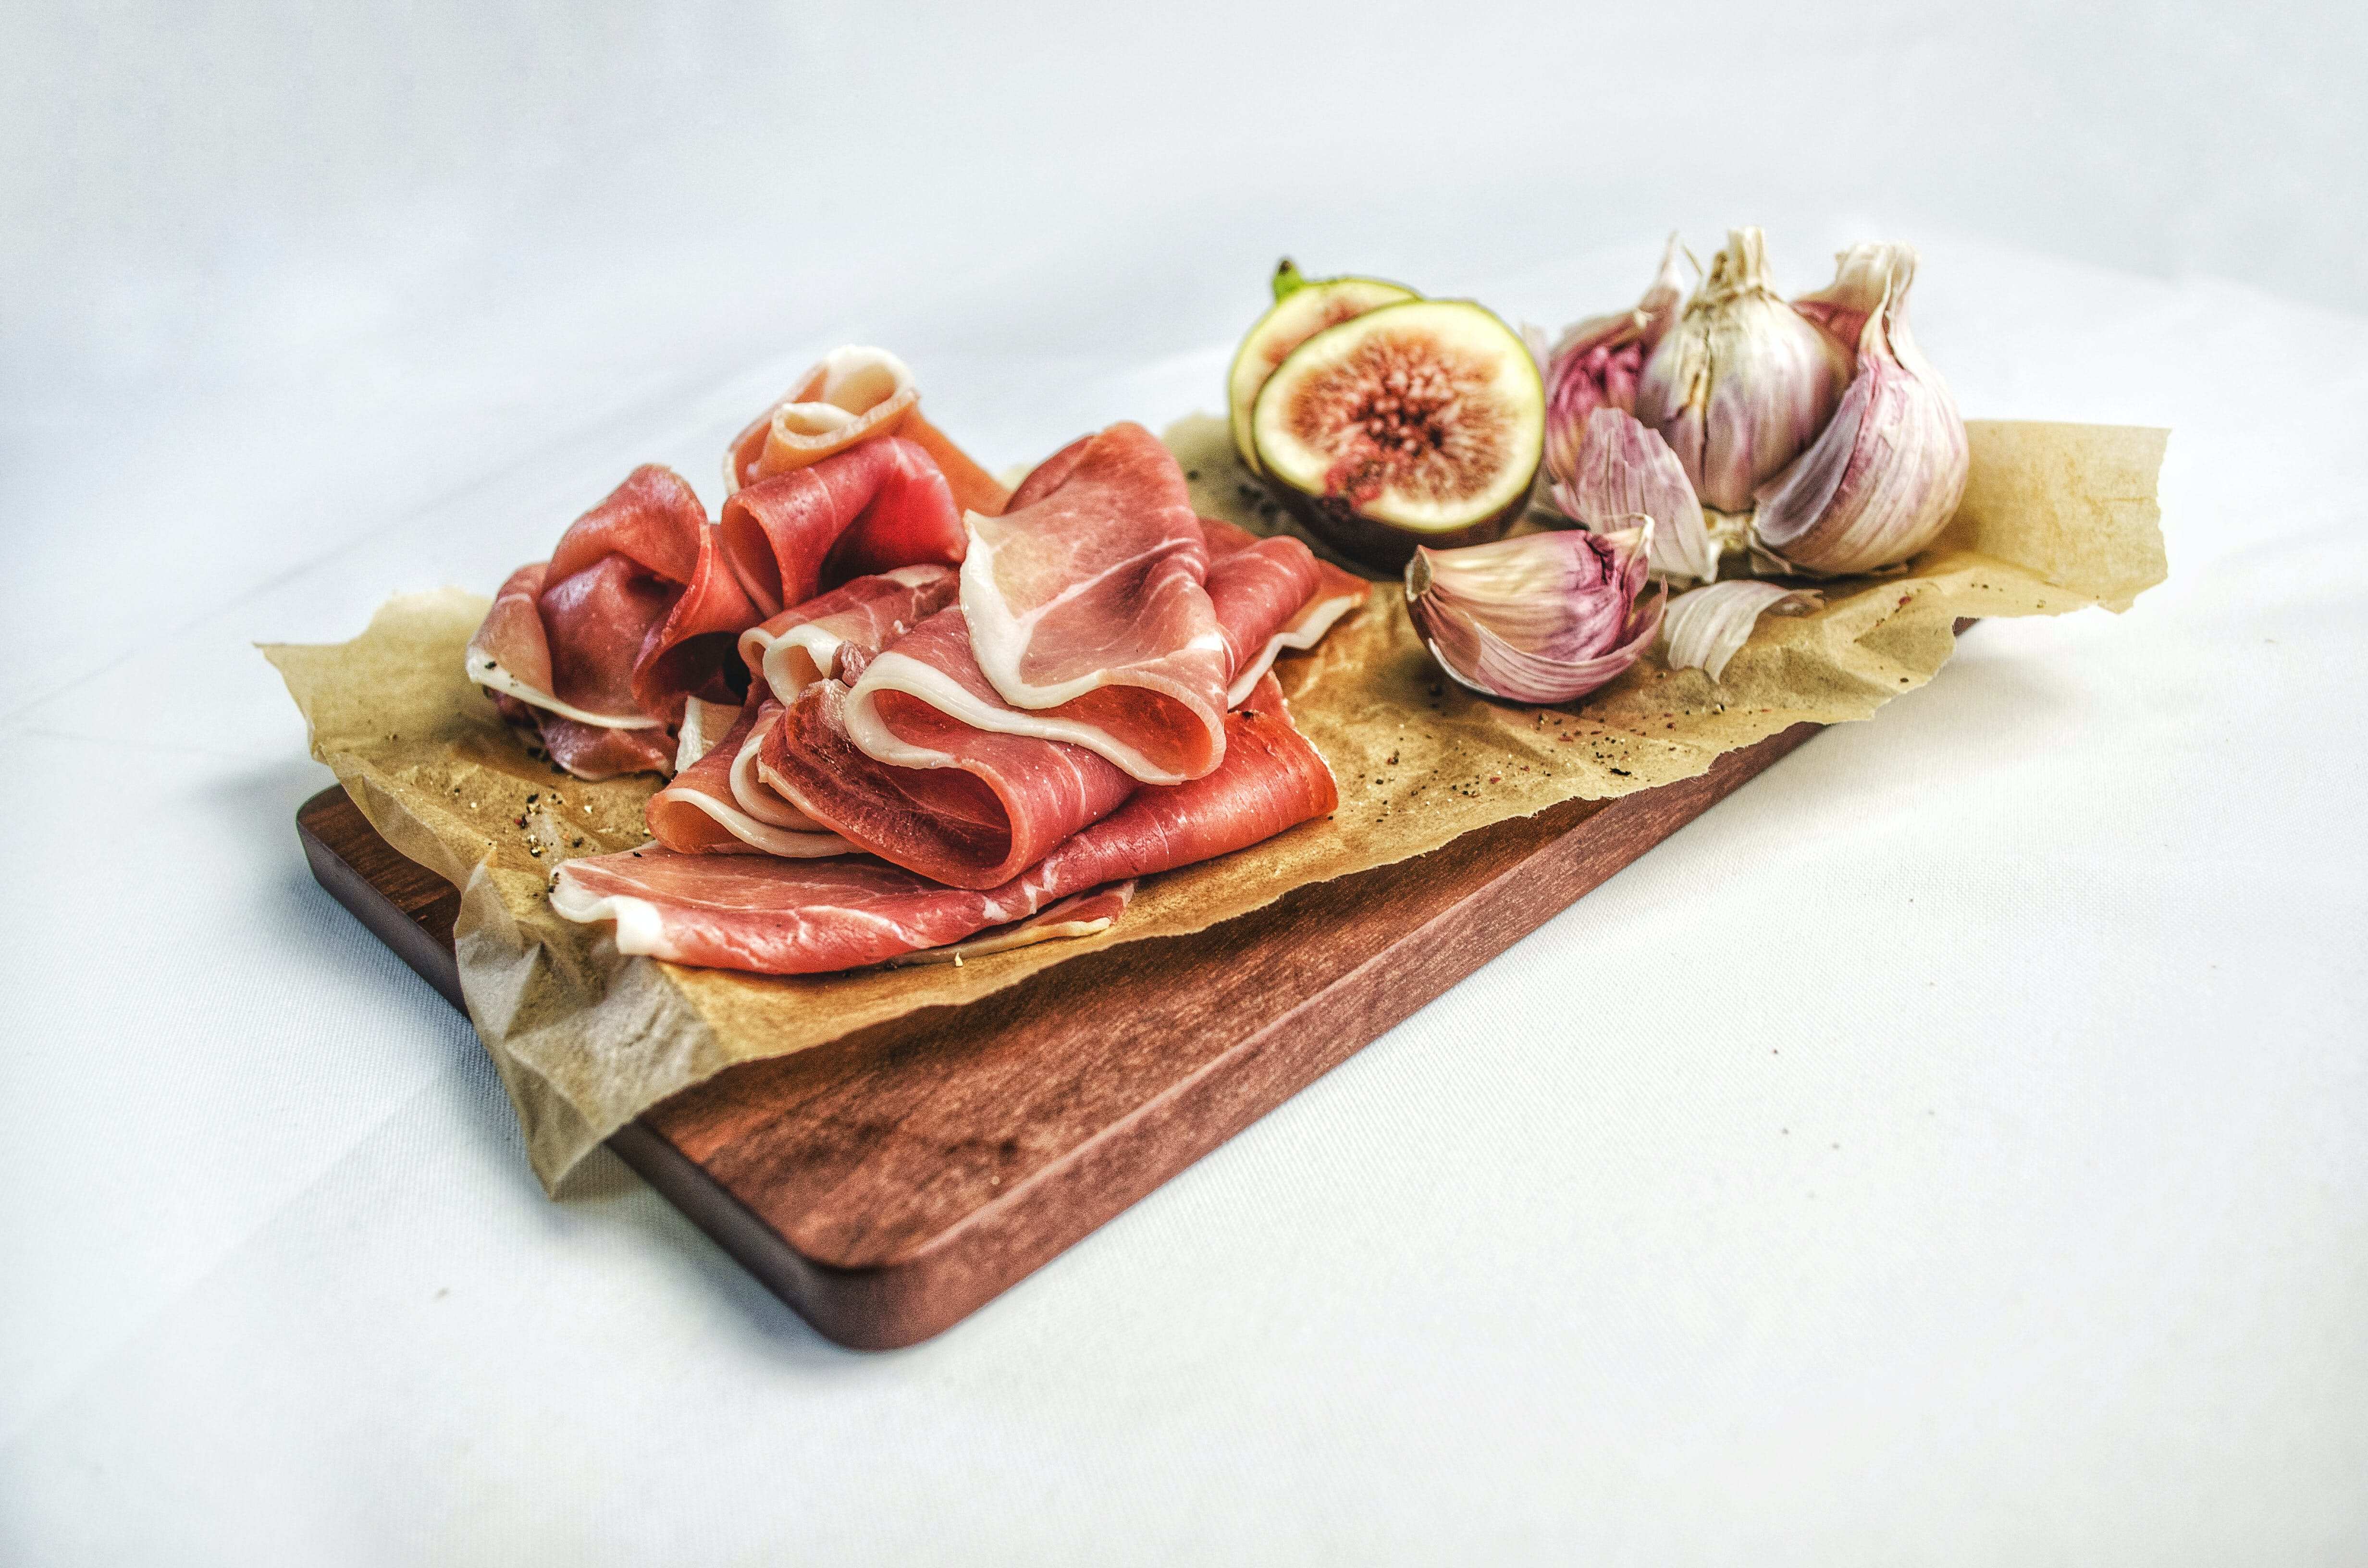 Bacon, Fig Fruit and Garlic Cloves